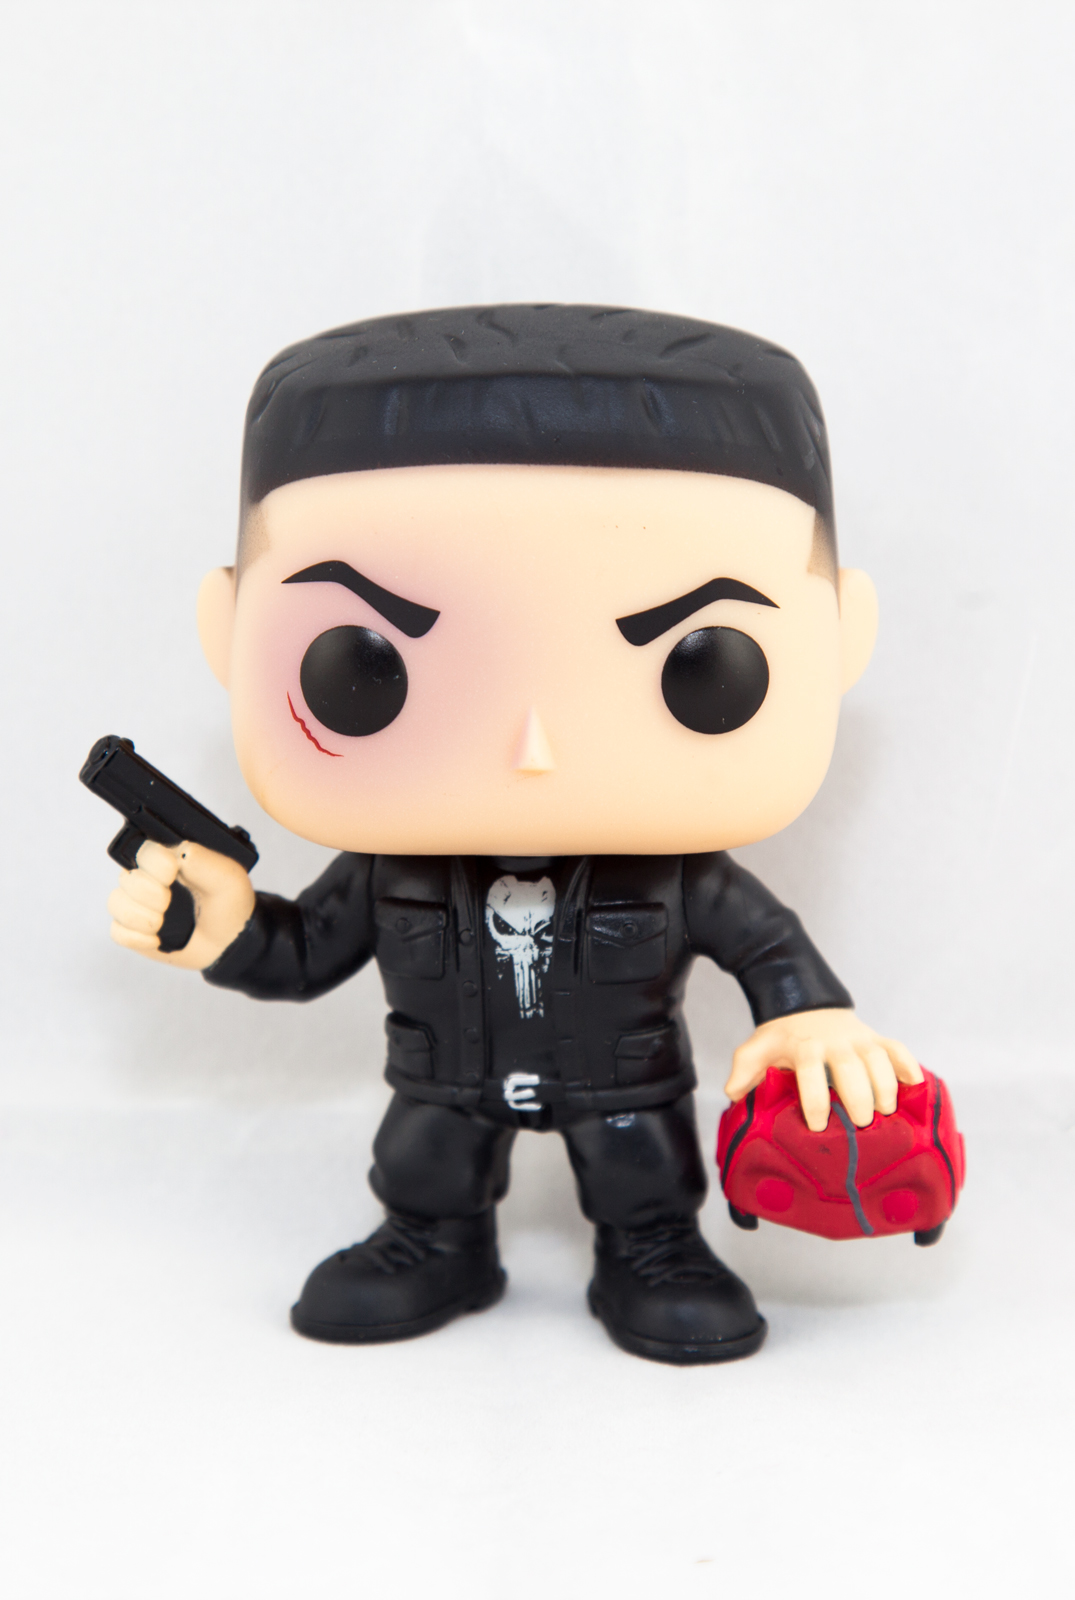 Cambio Funko POP Punisher chase